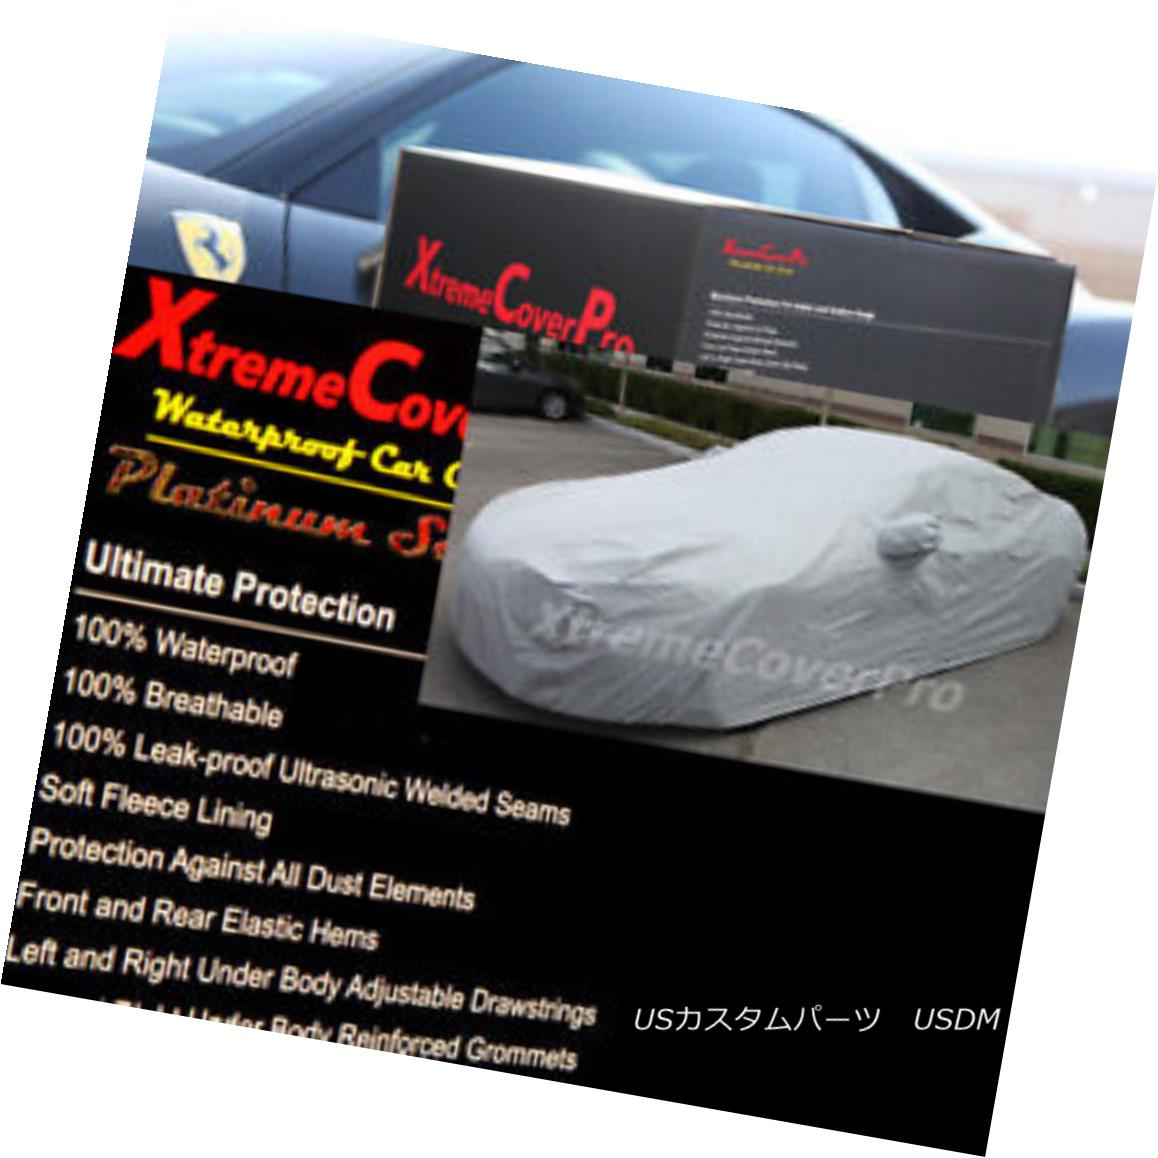 カーカバー 2015 AUDI A3 S3 SEDAN Waterproof Car Cover w/Mirror Pockets - Gray 2015 AUDI A3 S3セダン防水カーカバー(ミラーポケット付) - グレー